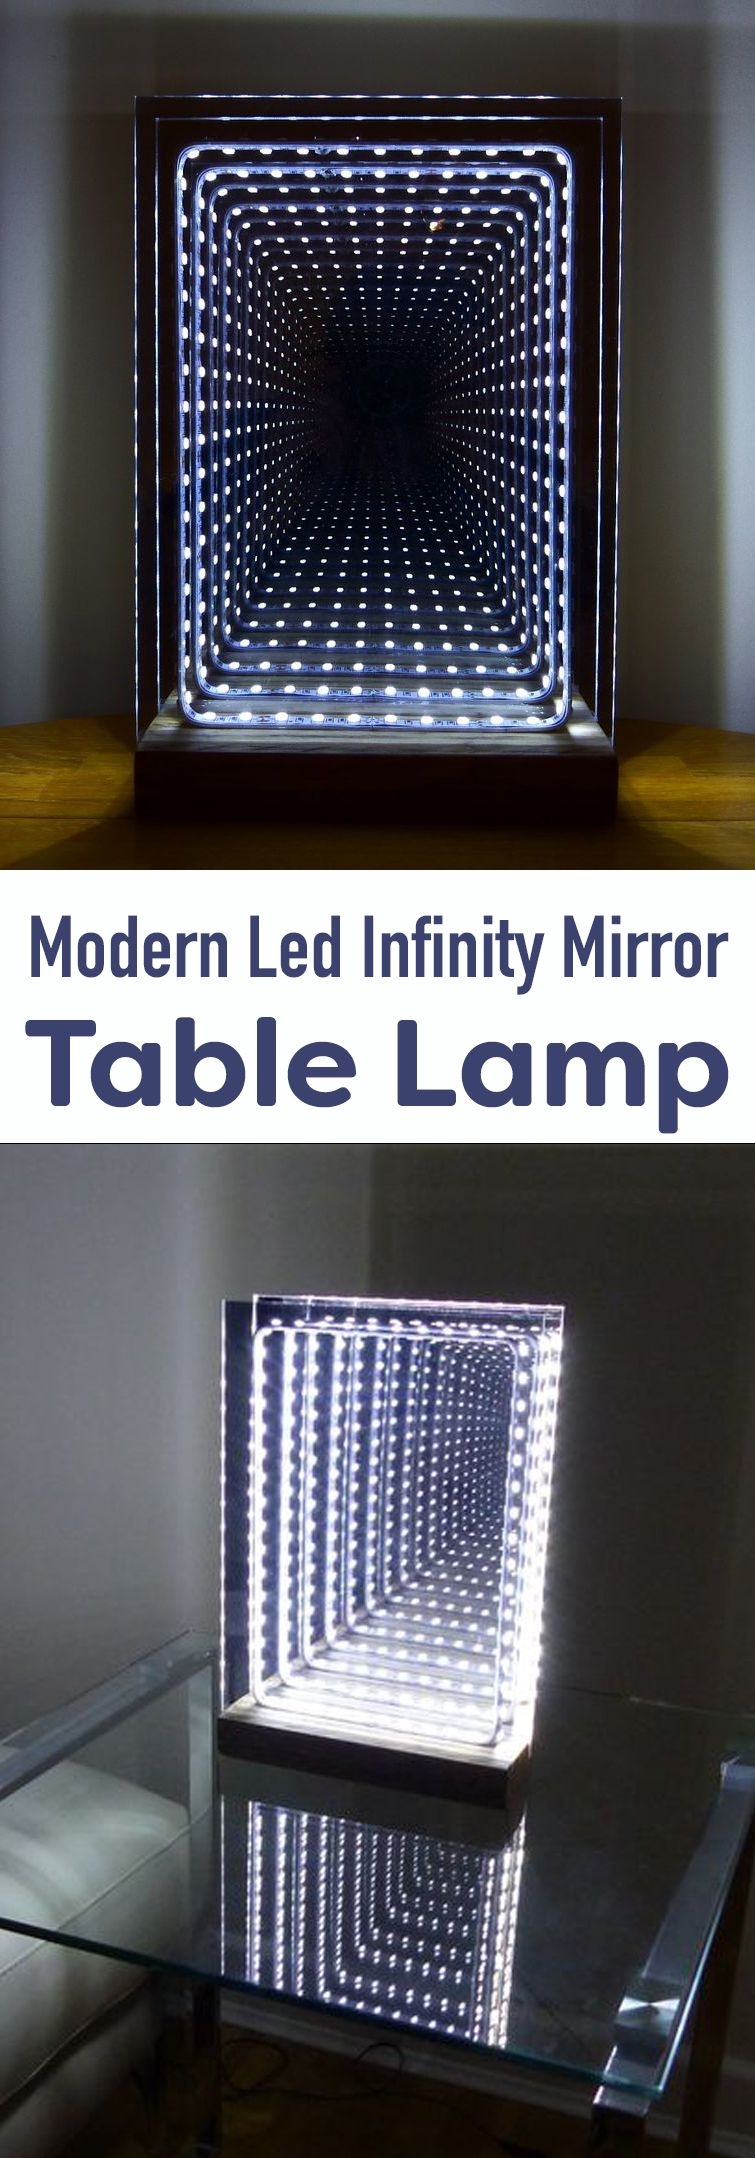 Modern Led Infinity Mirror Table Lamp Infinity Mirror Infinity And Modern